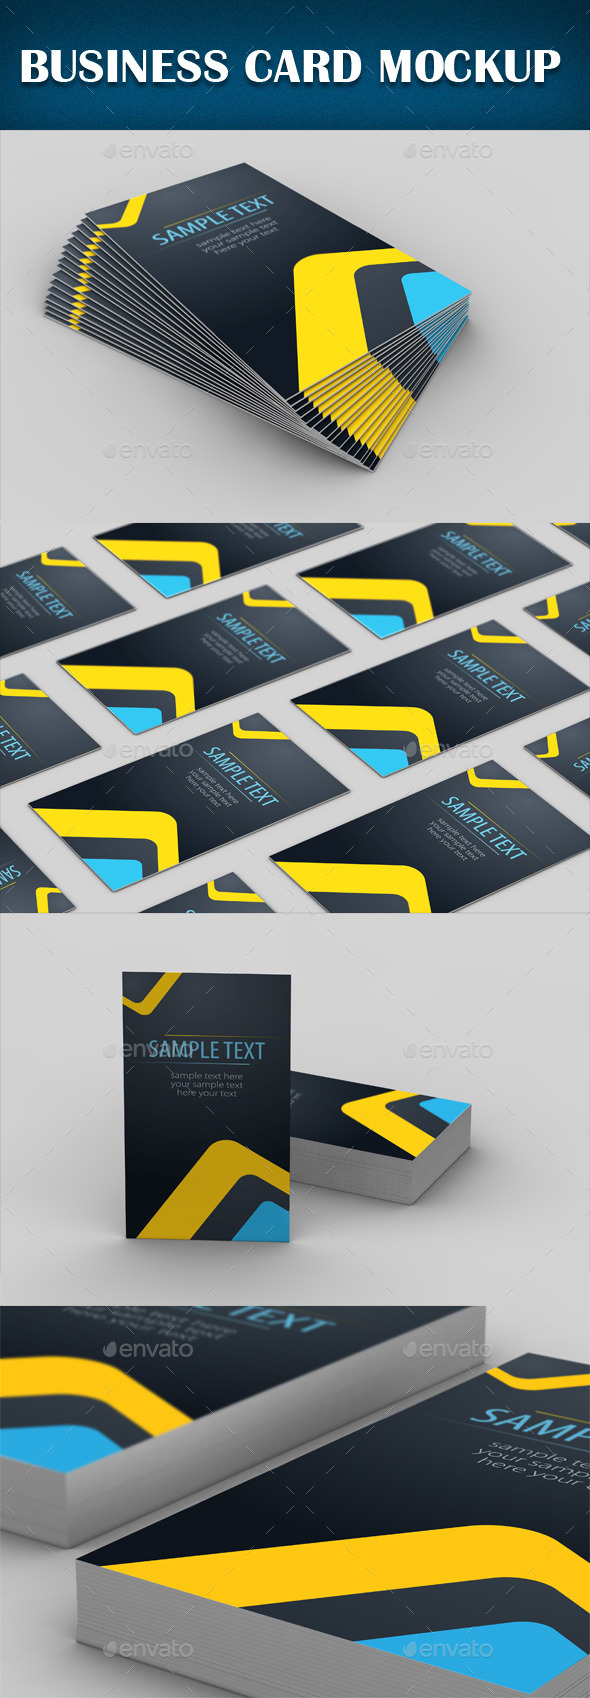 GraphicRiver Business Card Mockup 8923366